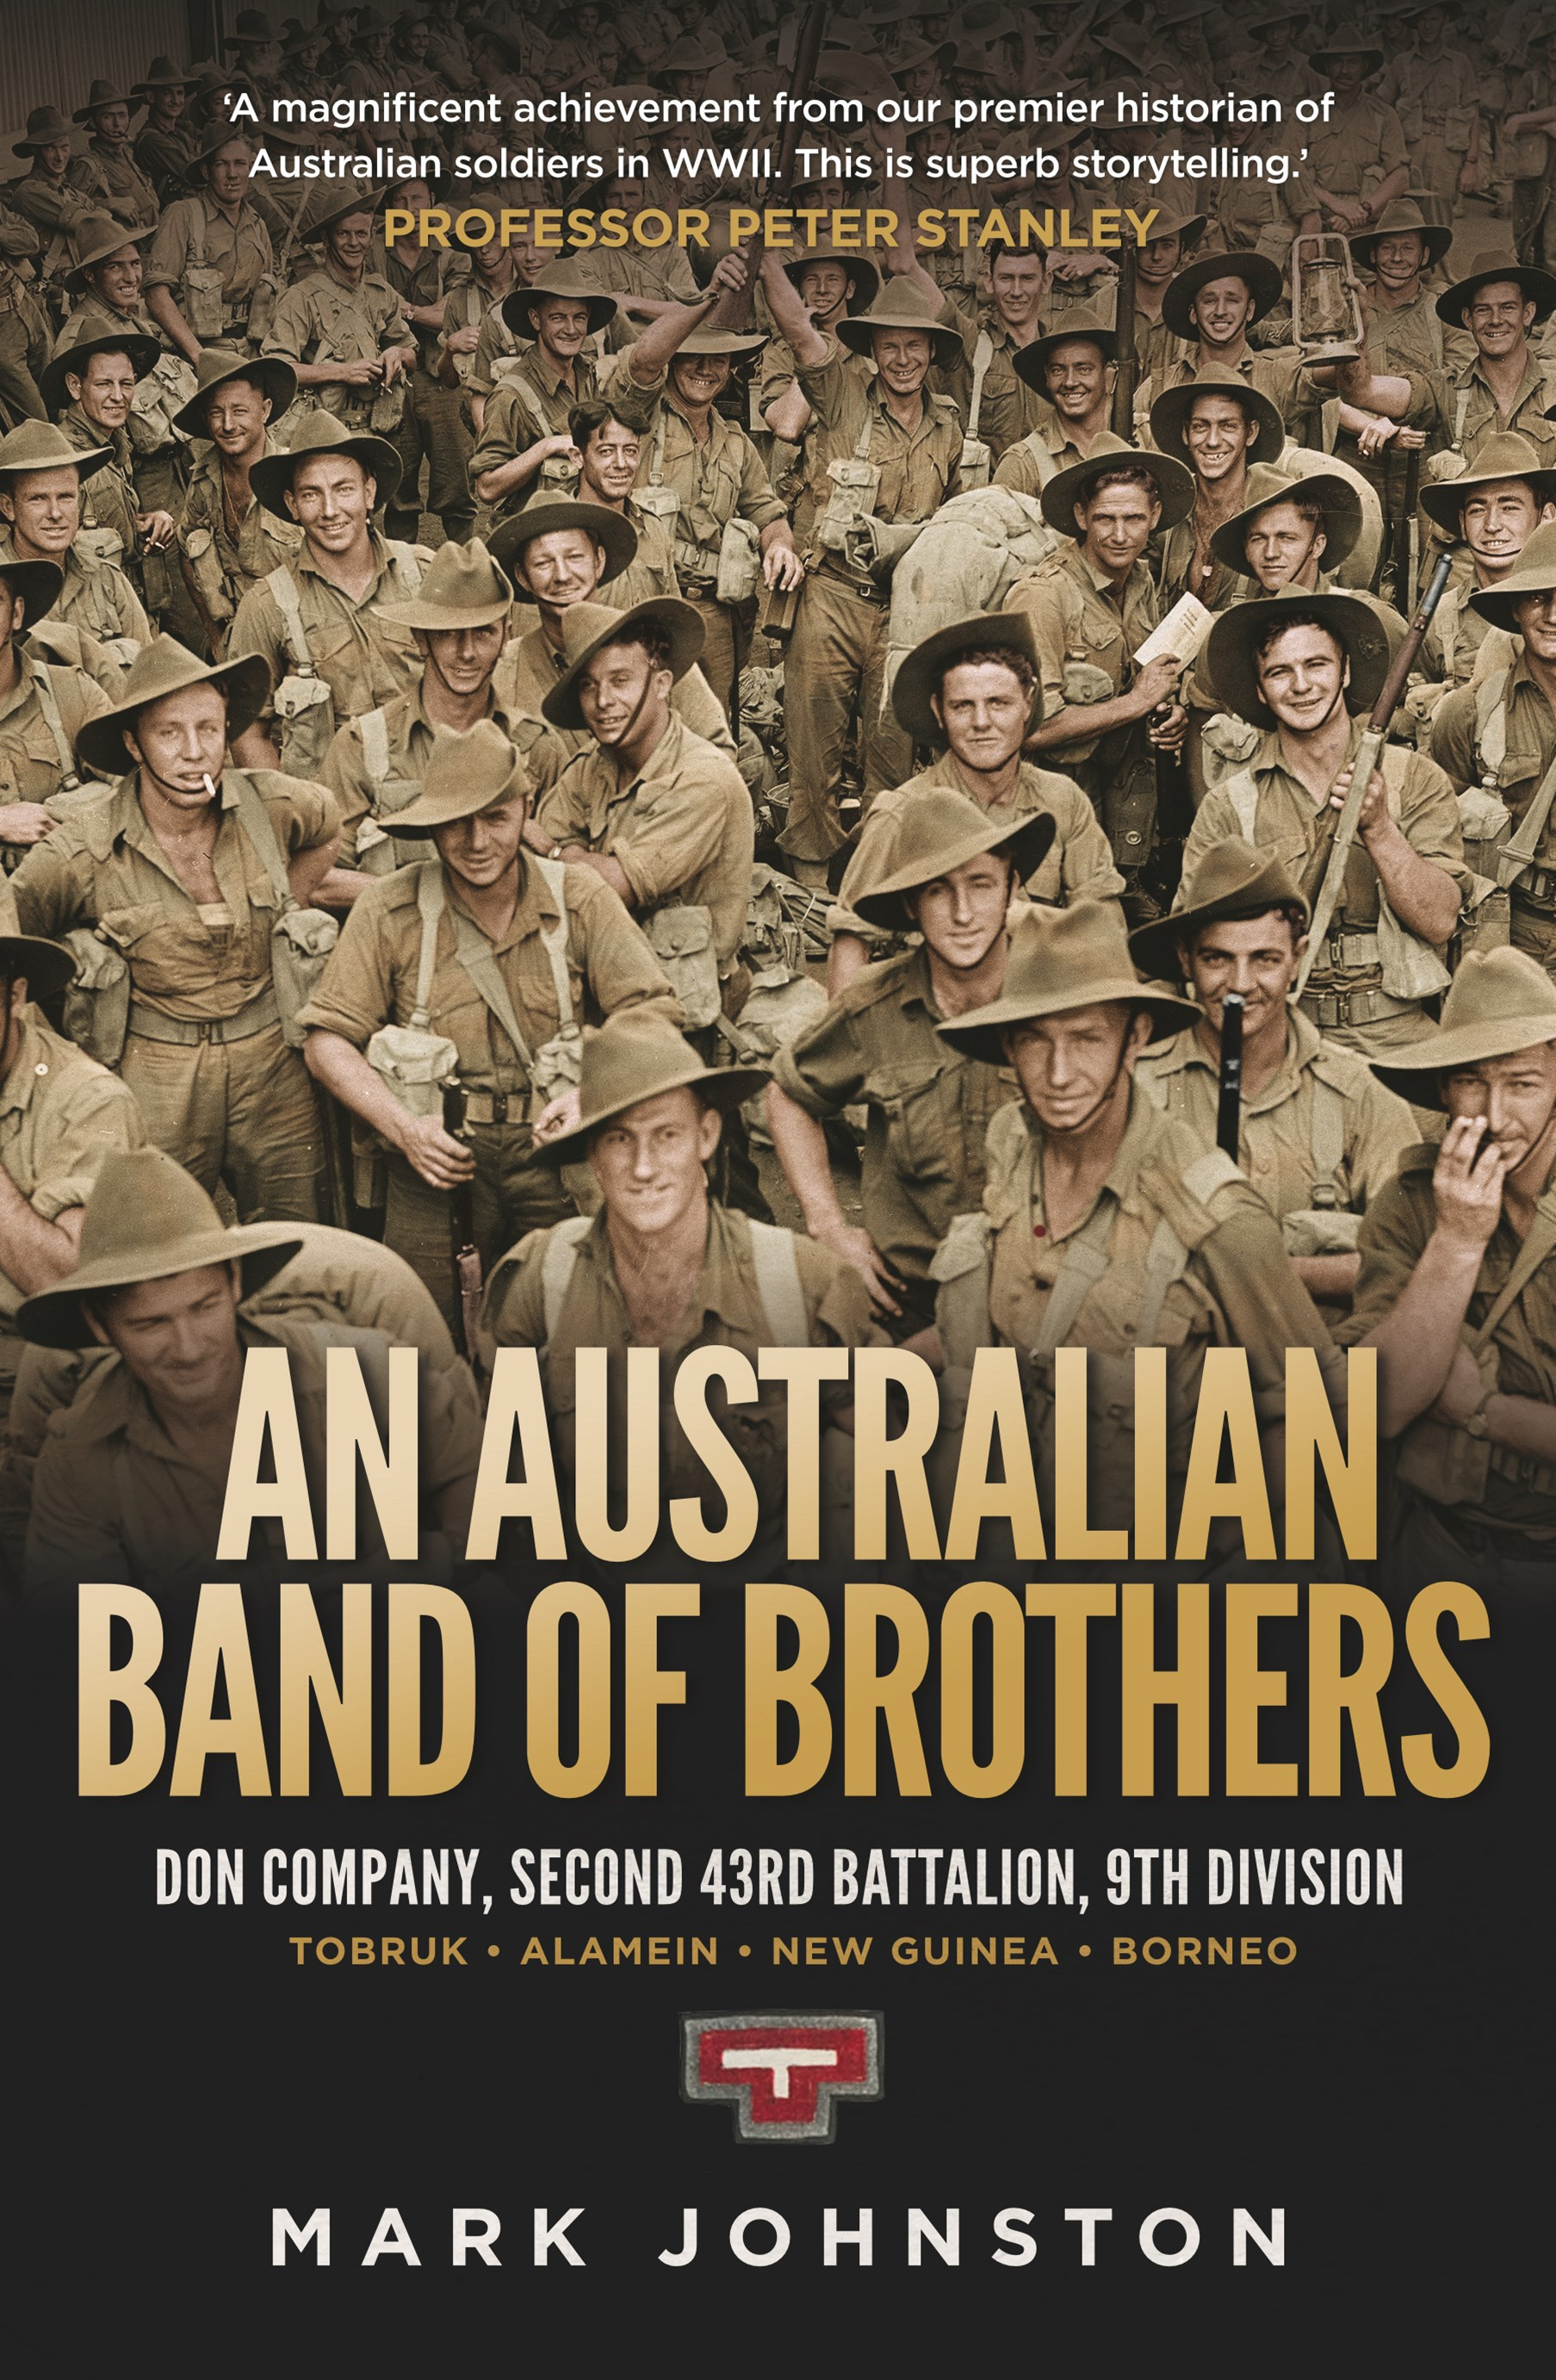 An Australian Band of Brothers